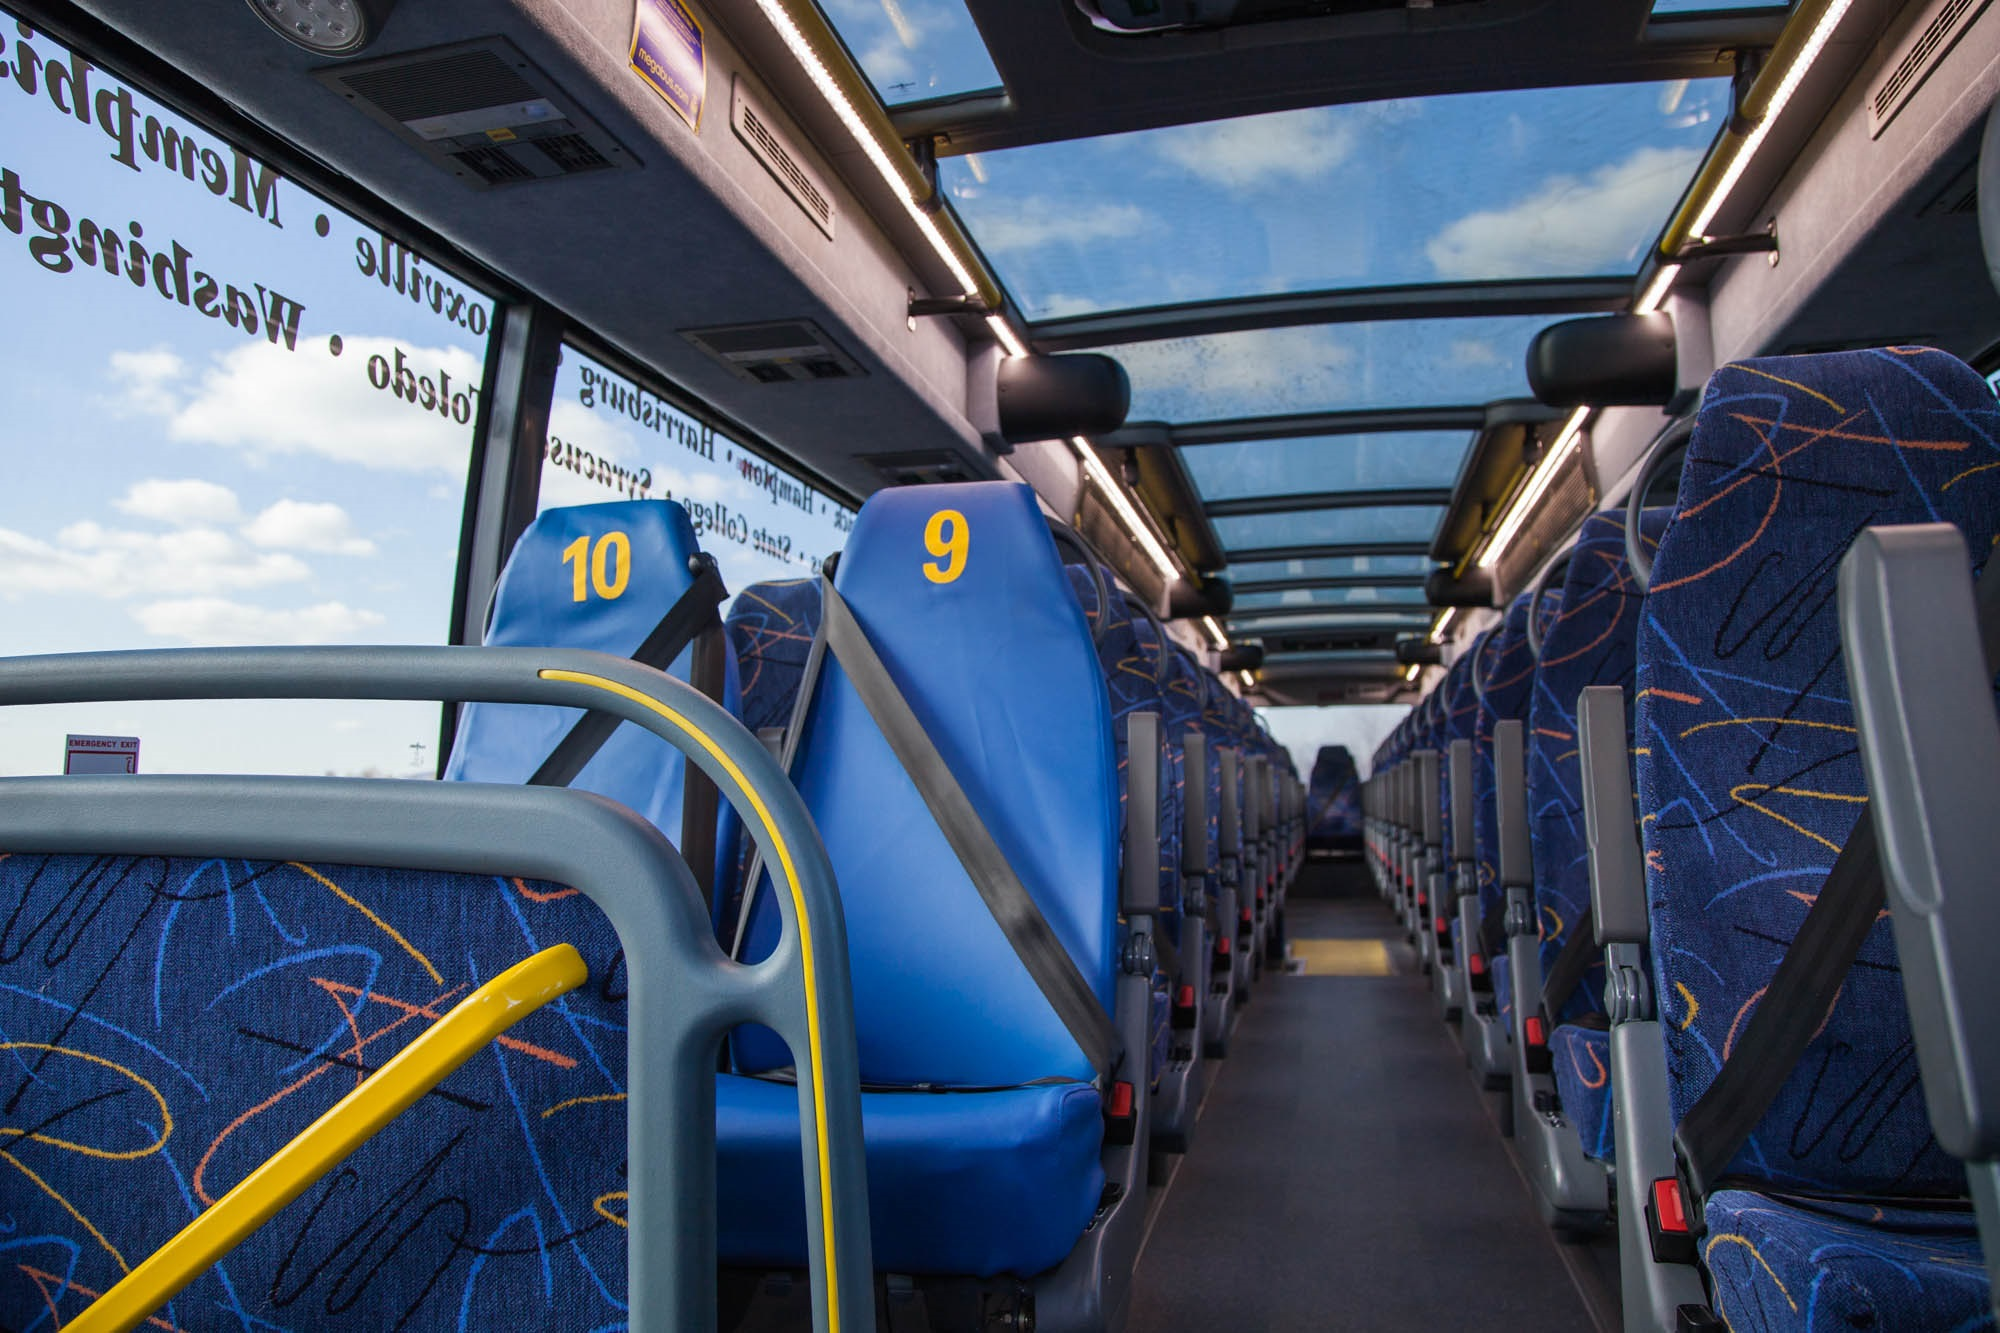 1c6839be 9f2c 11e8 b895 0a11af595dac - 10 Reasons to Skip the Plane and Take This Bus Instead